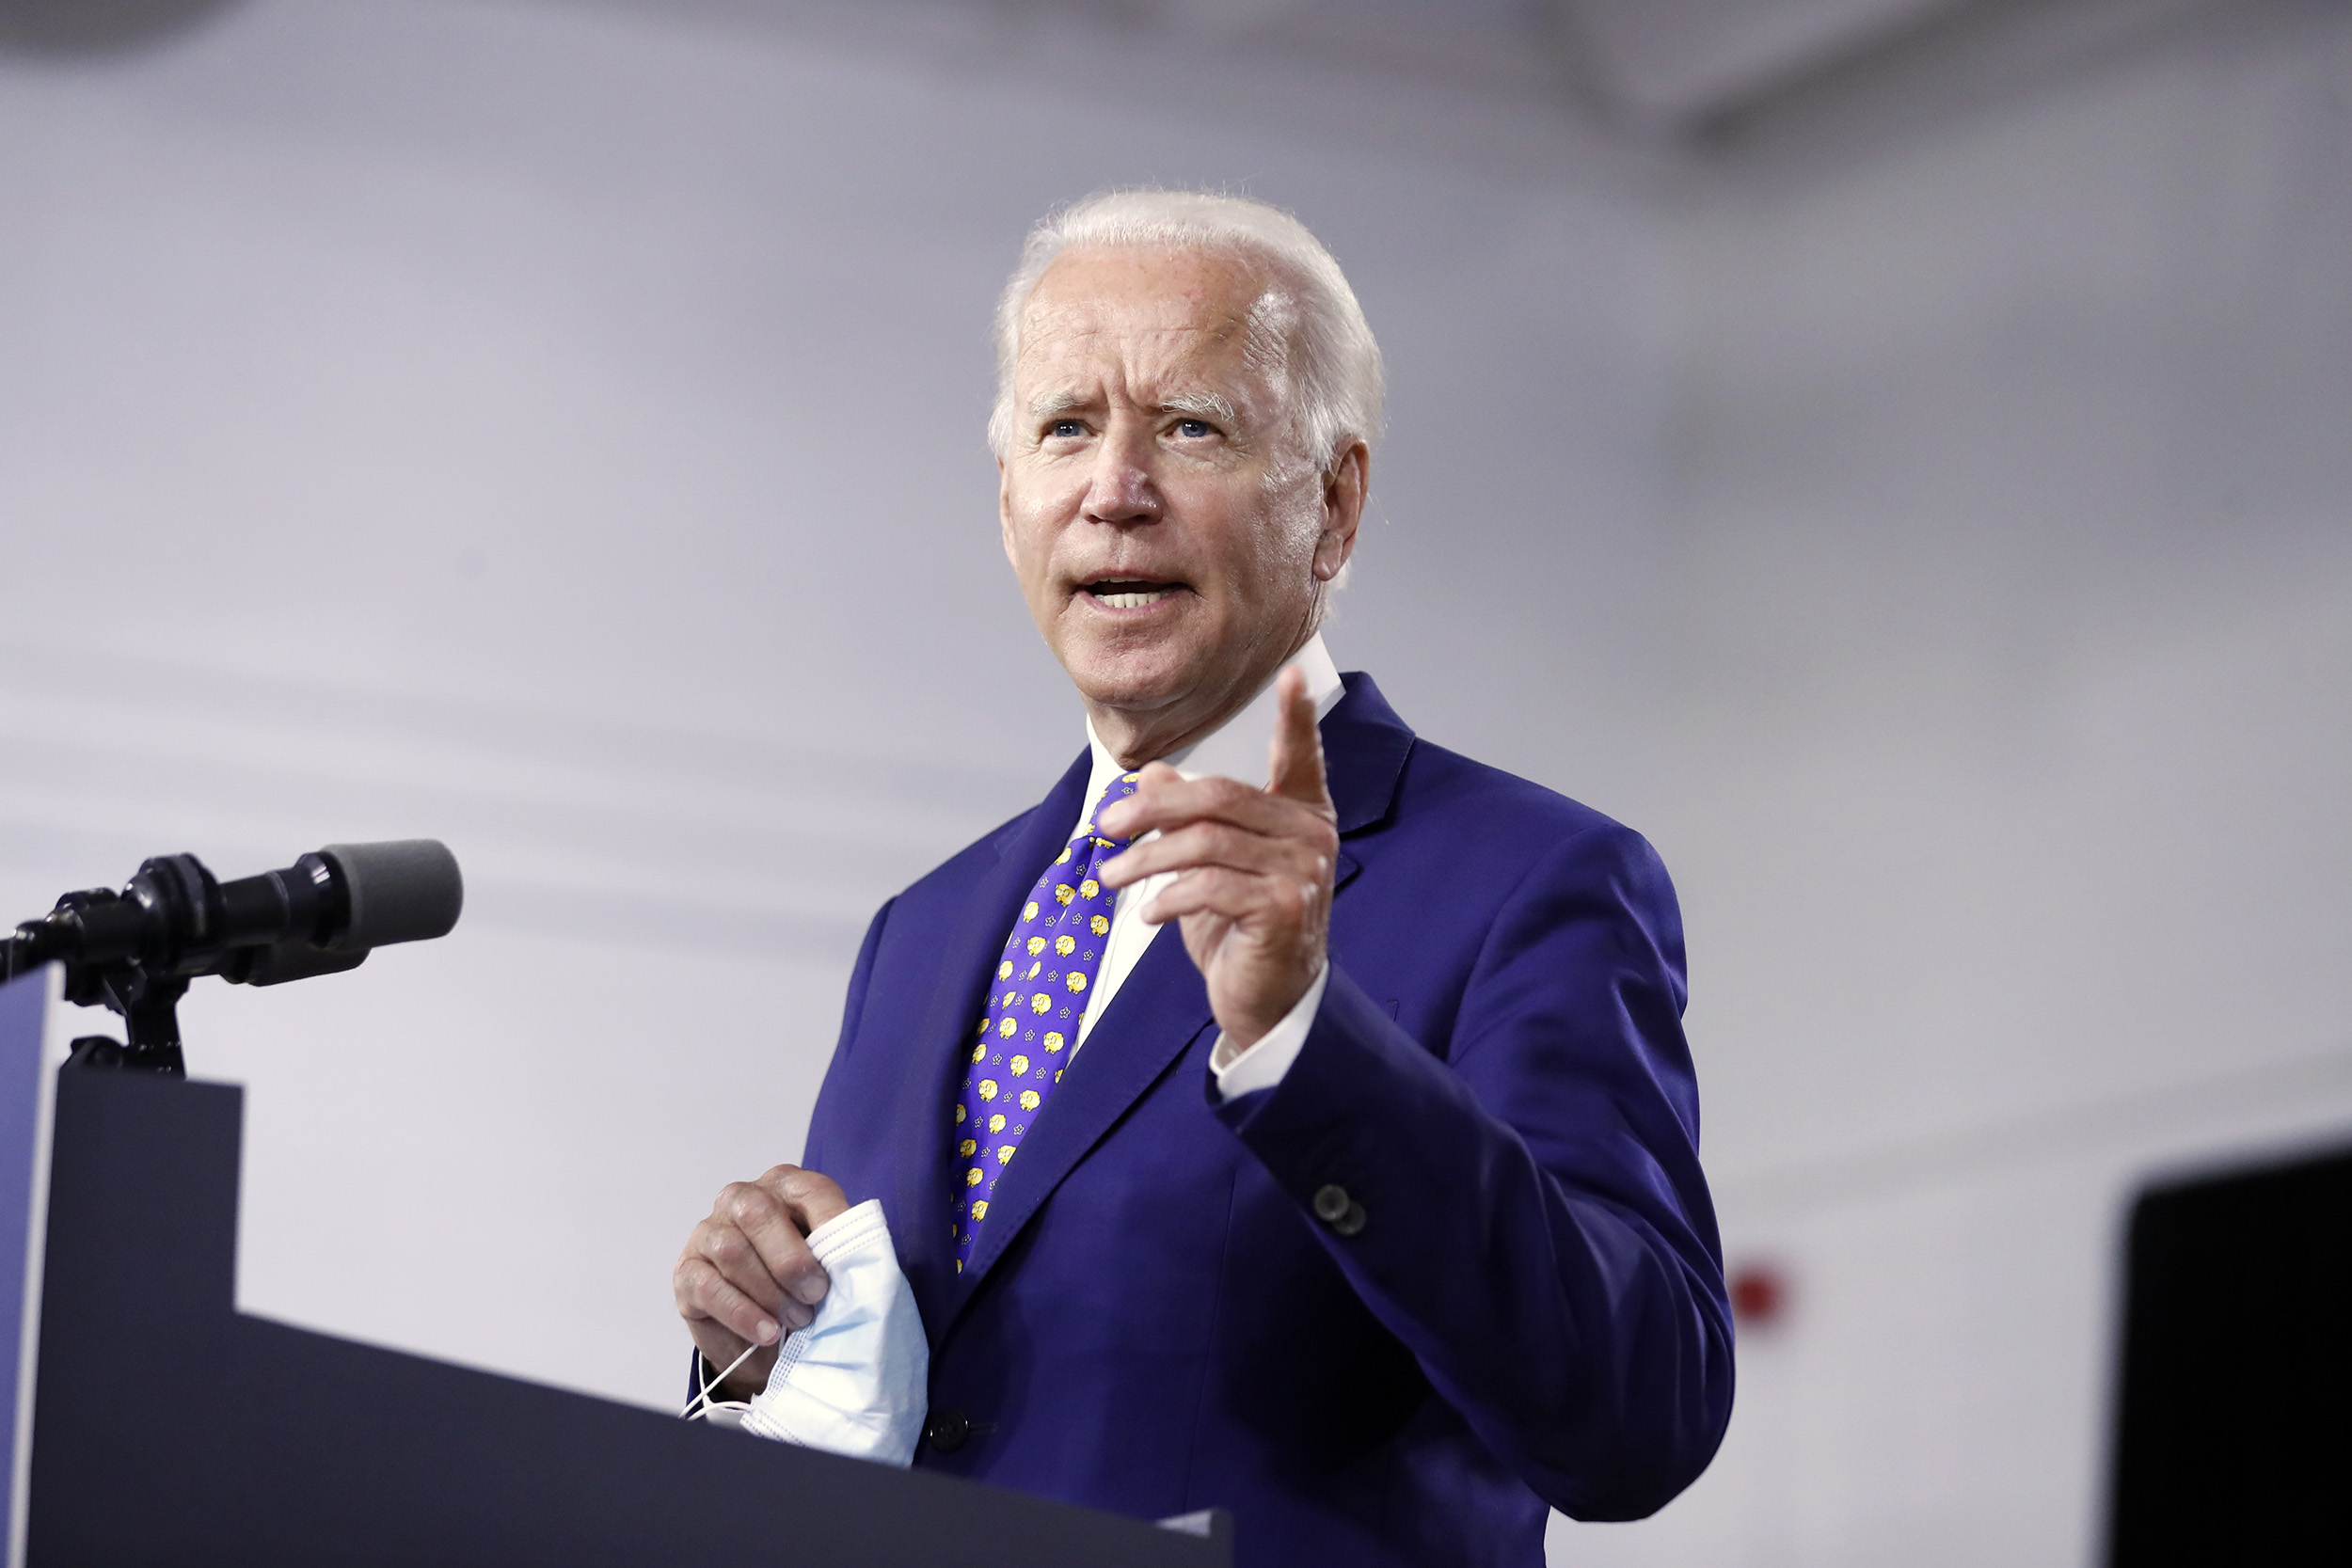 Fact check: Trump ad edits out microphone and trees from Biden photo to make him seem alone in basement